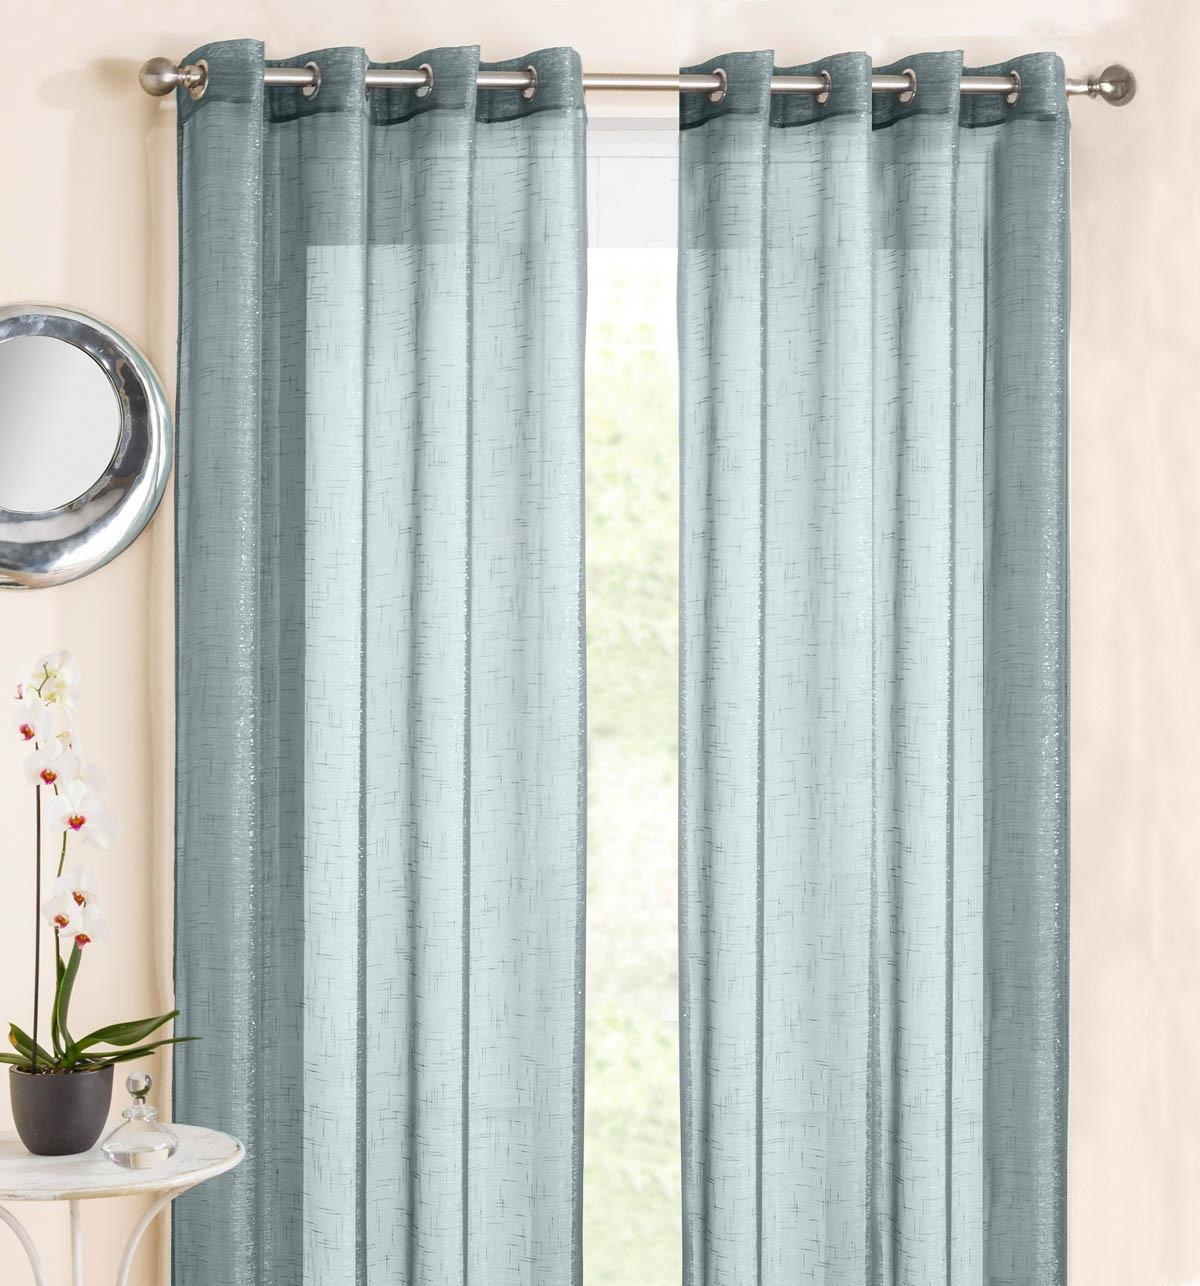 Marrakesh Eyelet Voile Panel Duck Egg Blue Affordable Curtain In Duck Egg Blue Striped Curtains (View 15 of 15)